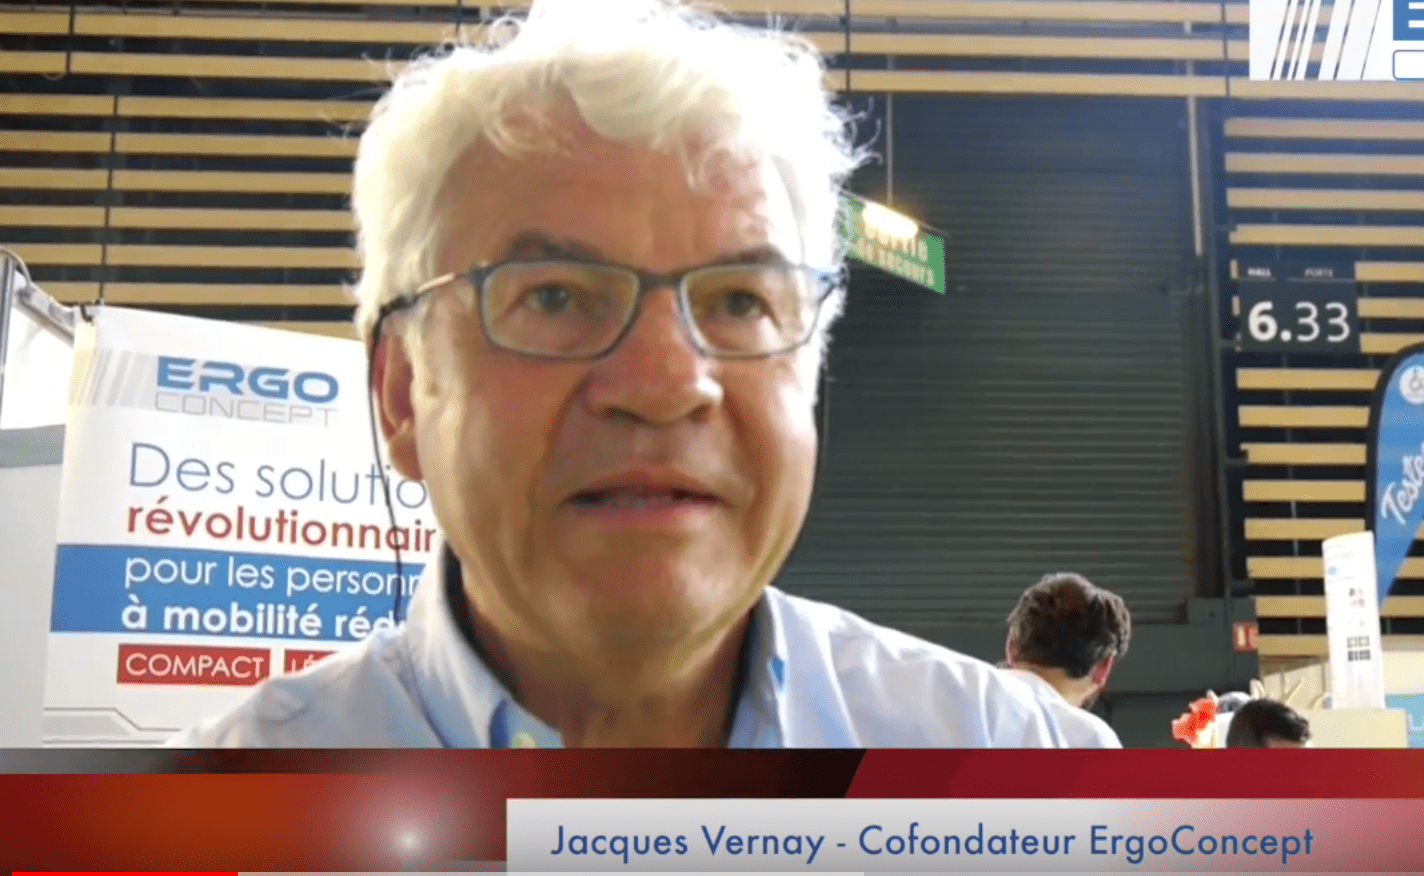 jacques vernay